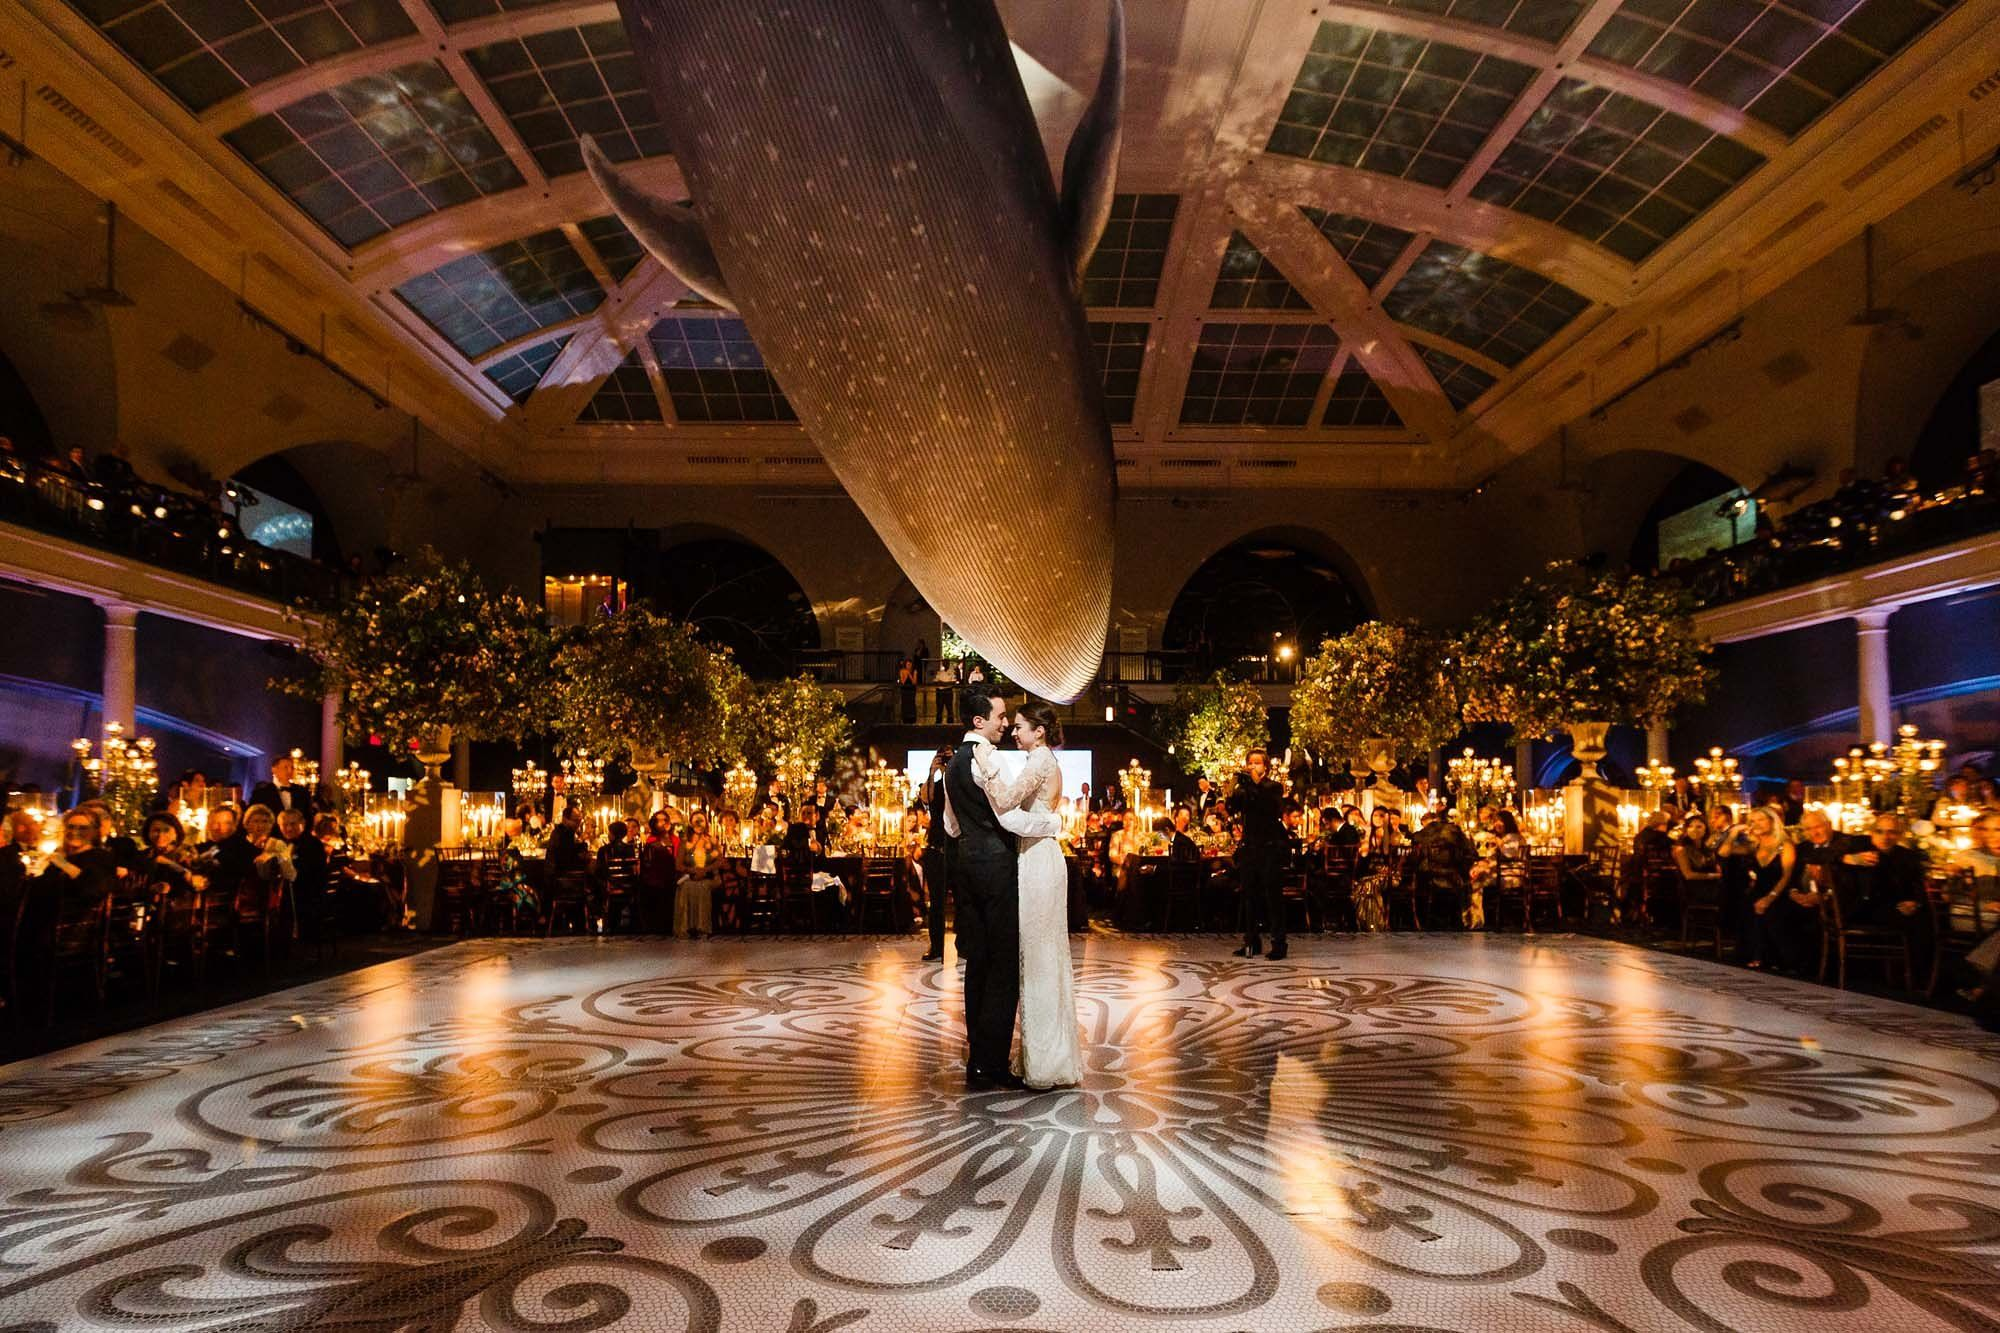 Elizabeth Fisch And Michael Dishis Wedding At The American Museum Of Natural History